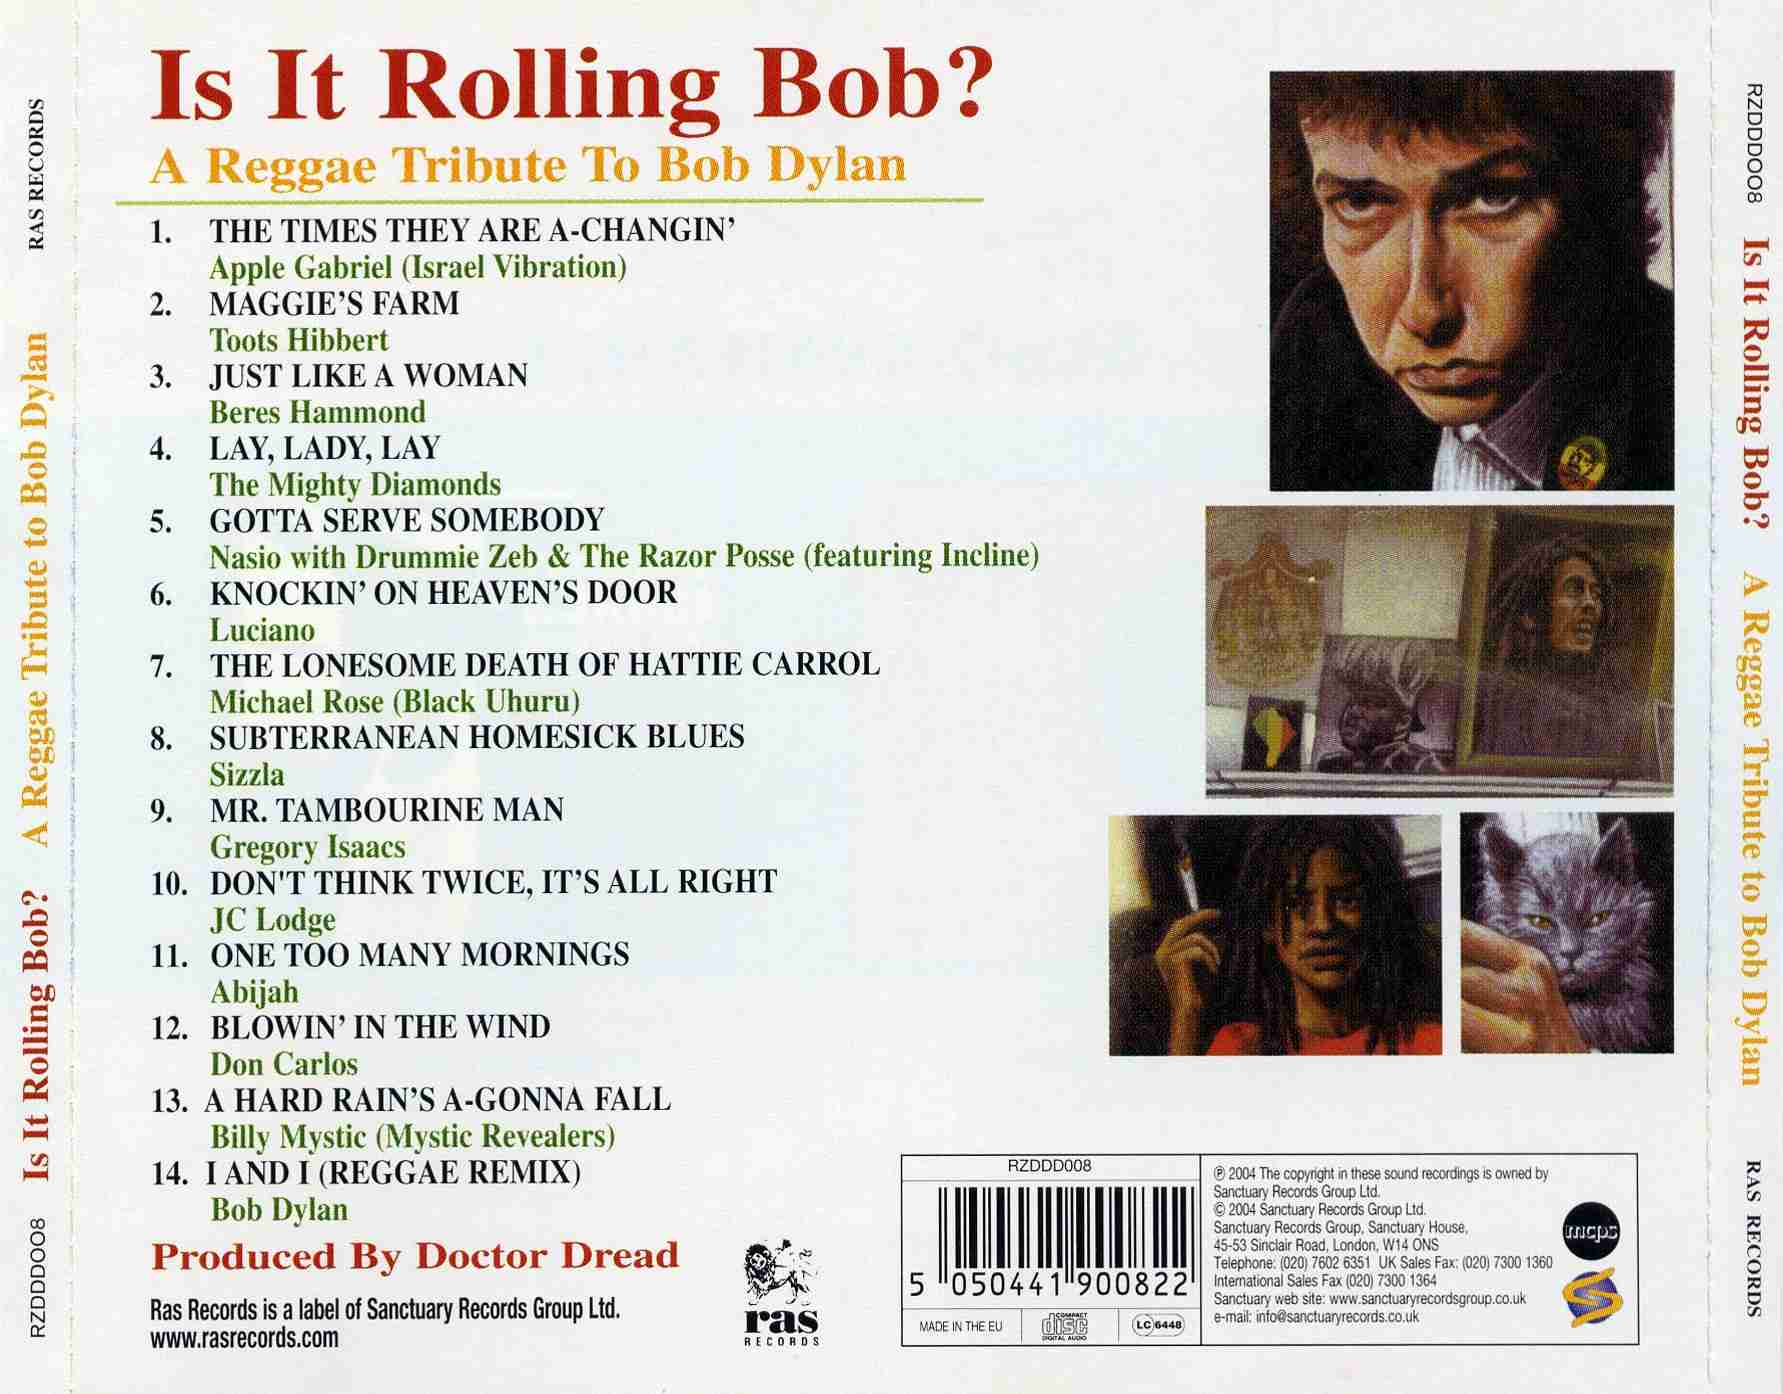 A Reggae Tribute To Bob Dylan - Is It Rolling Bob - Back